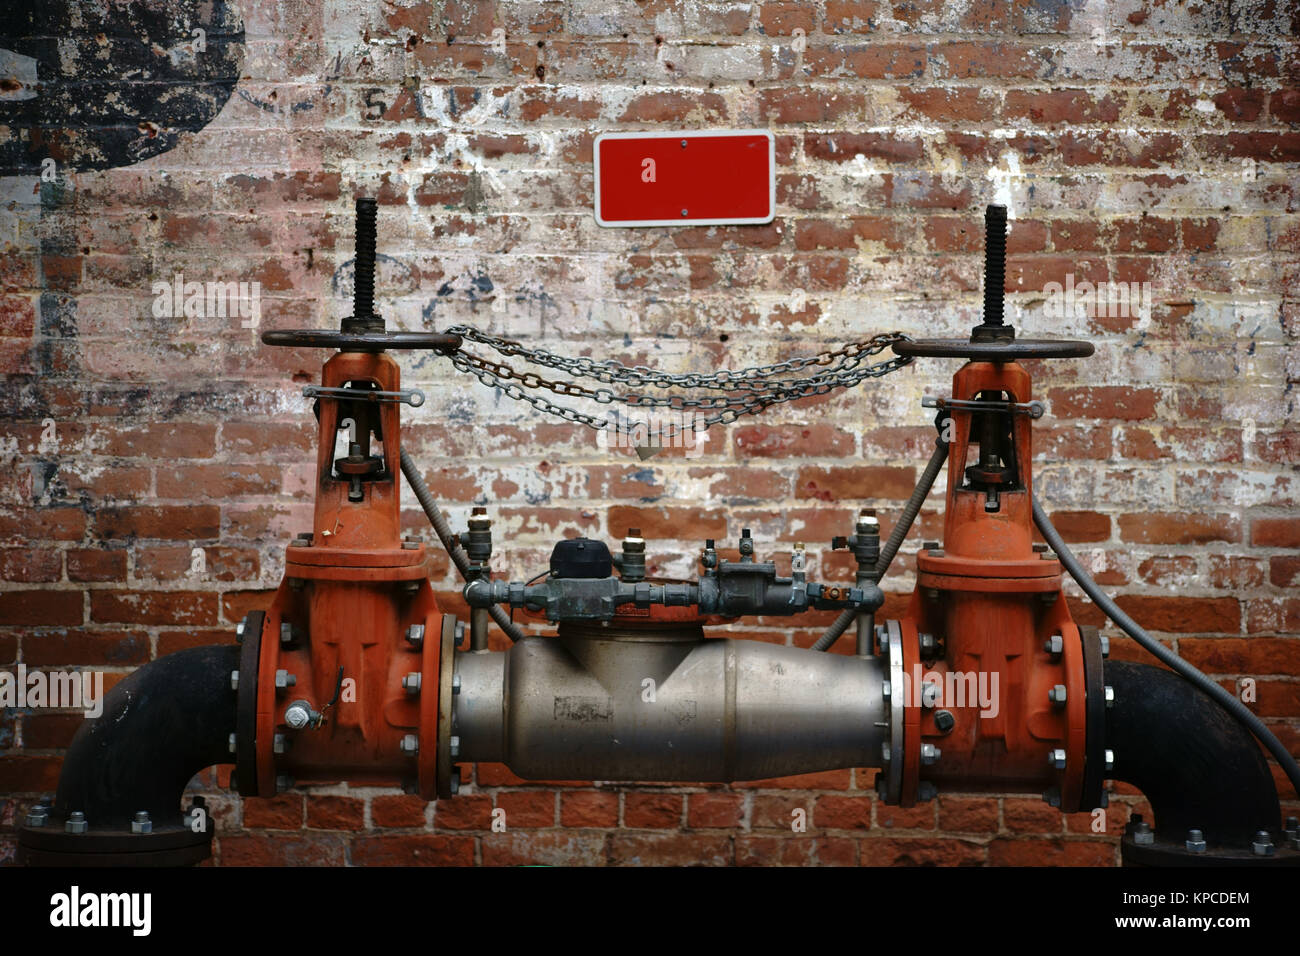 Goldene Uhr Stock Photos Goldene Uhr Stock Images Alamy Backsteinwand Stock Photos And Backsteinwand Stock Images